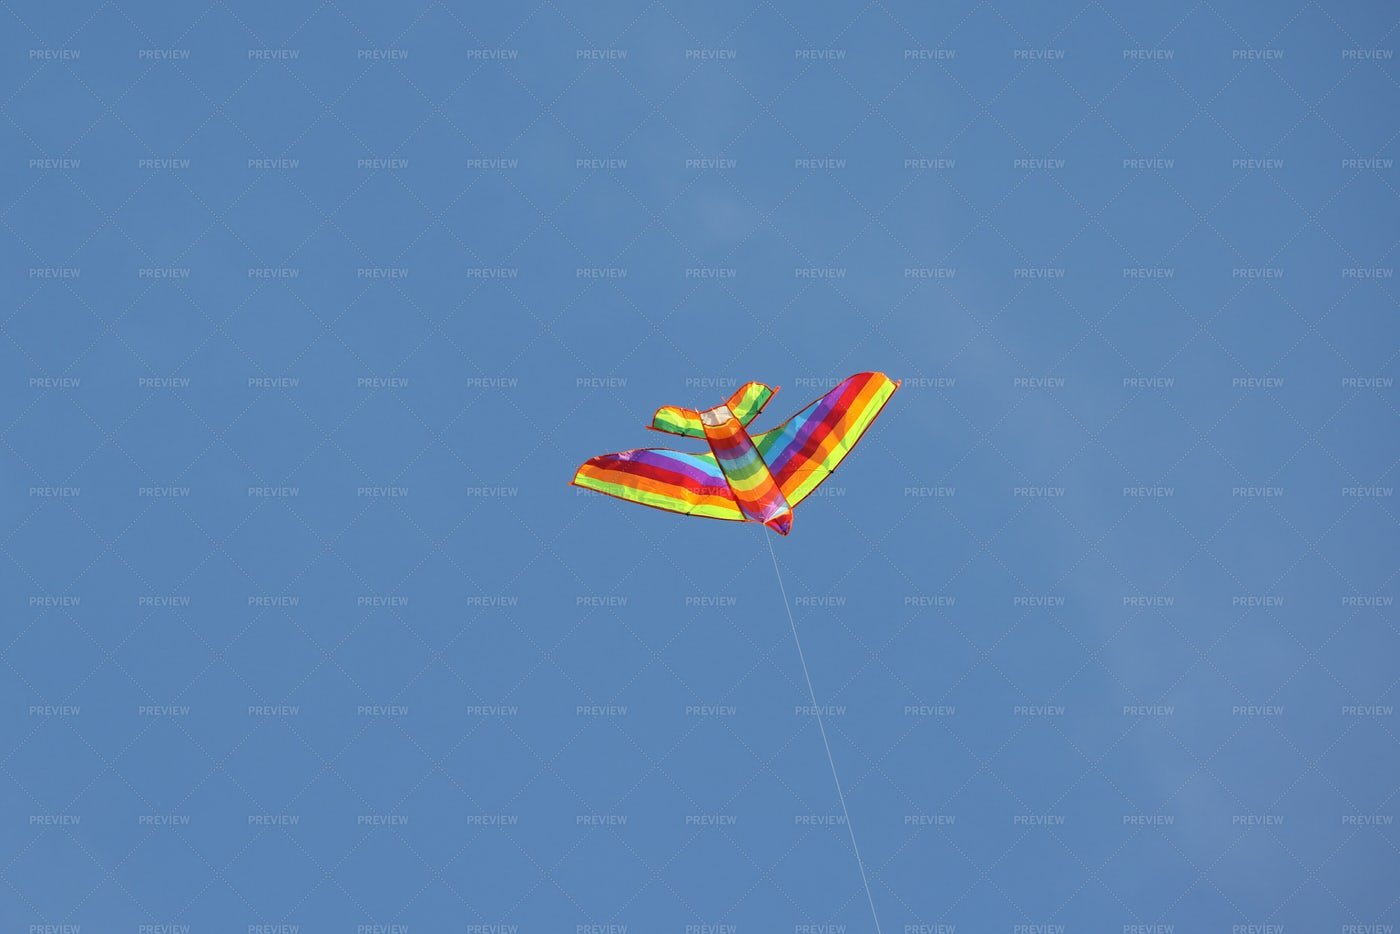 Multicolor Kite Hovers In Sky: Stock Photos